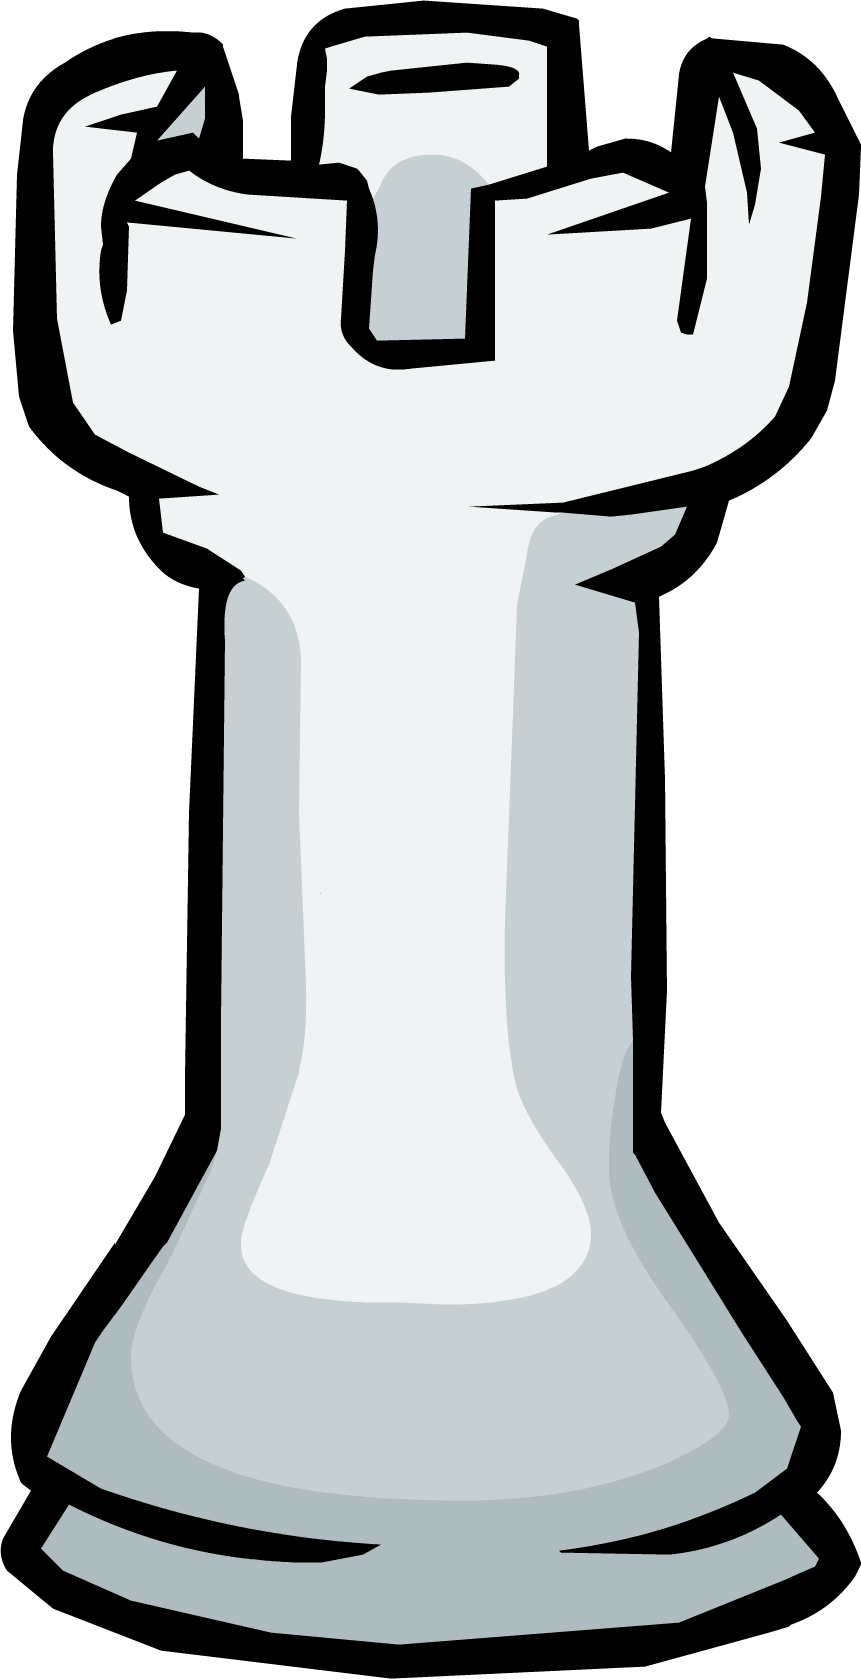 Clipart castle pillar. Image chess png club